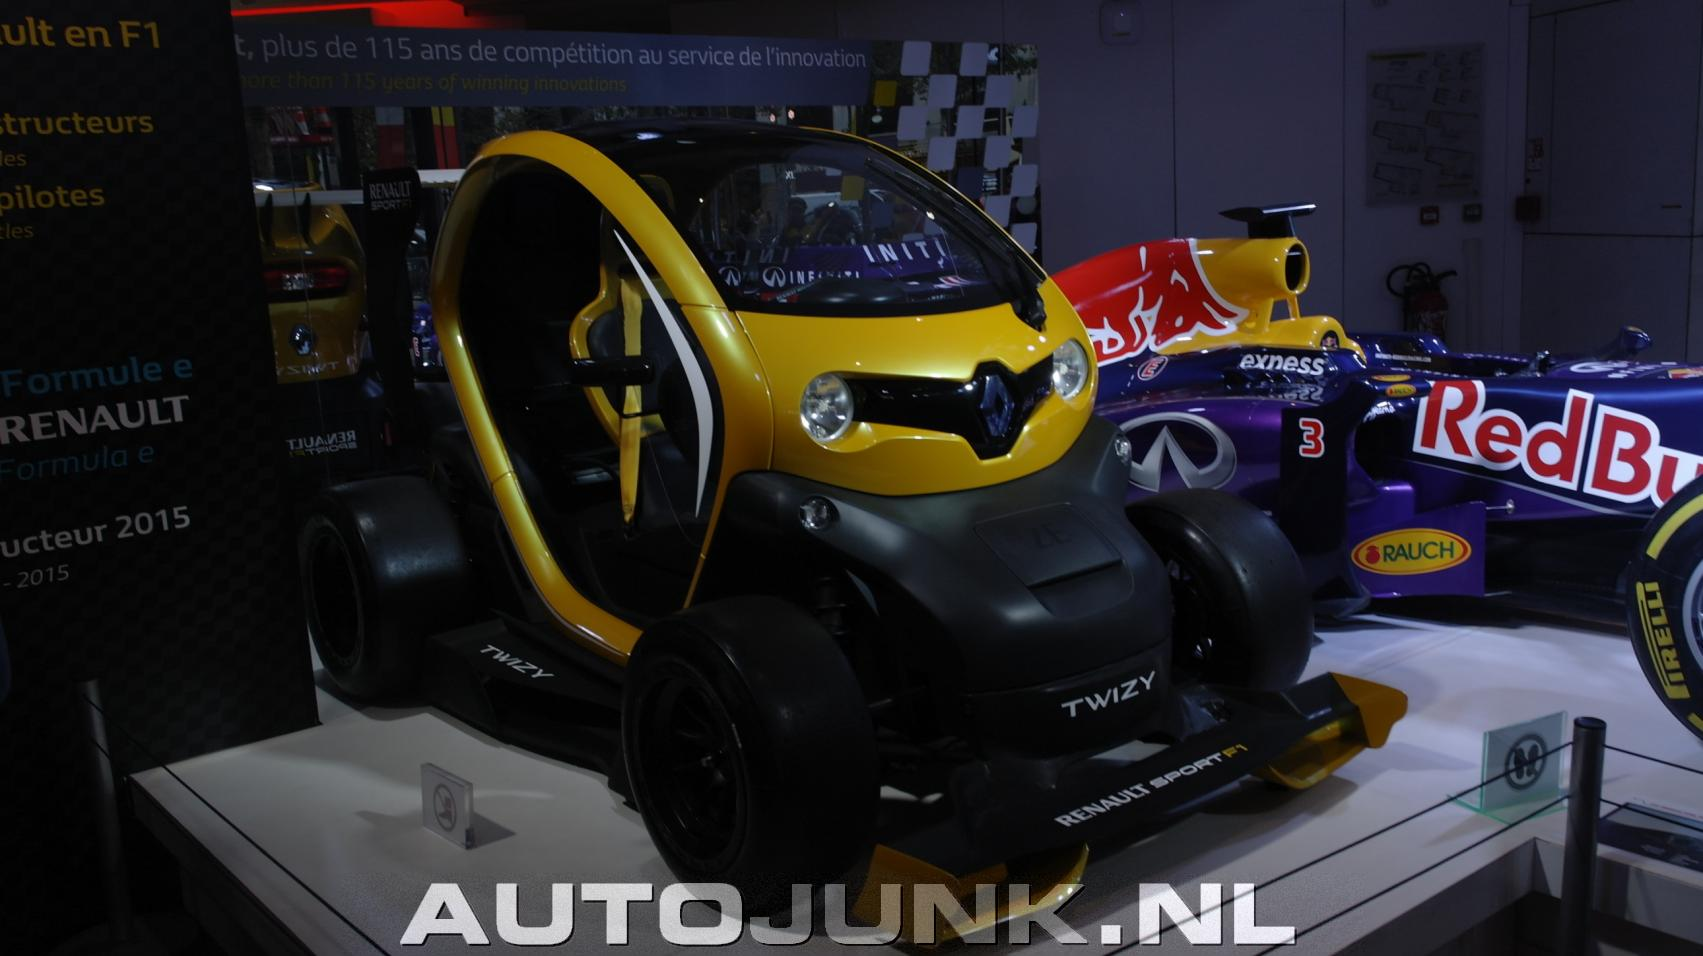 renault sport twizy f1 39 concept 39 foto 39 s 154994. Black Bedroom Furniture Sets. Home Design Ideas